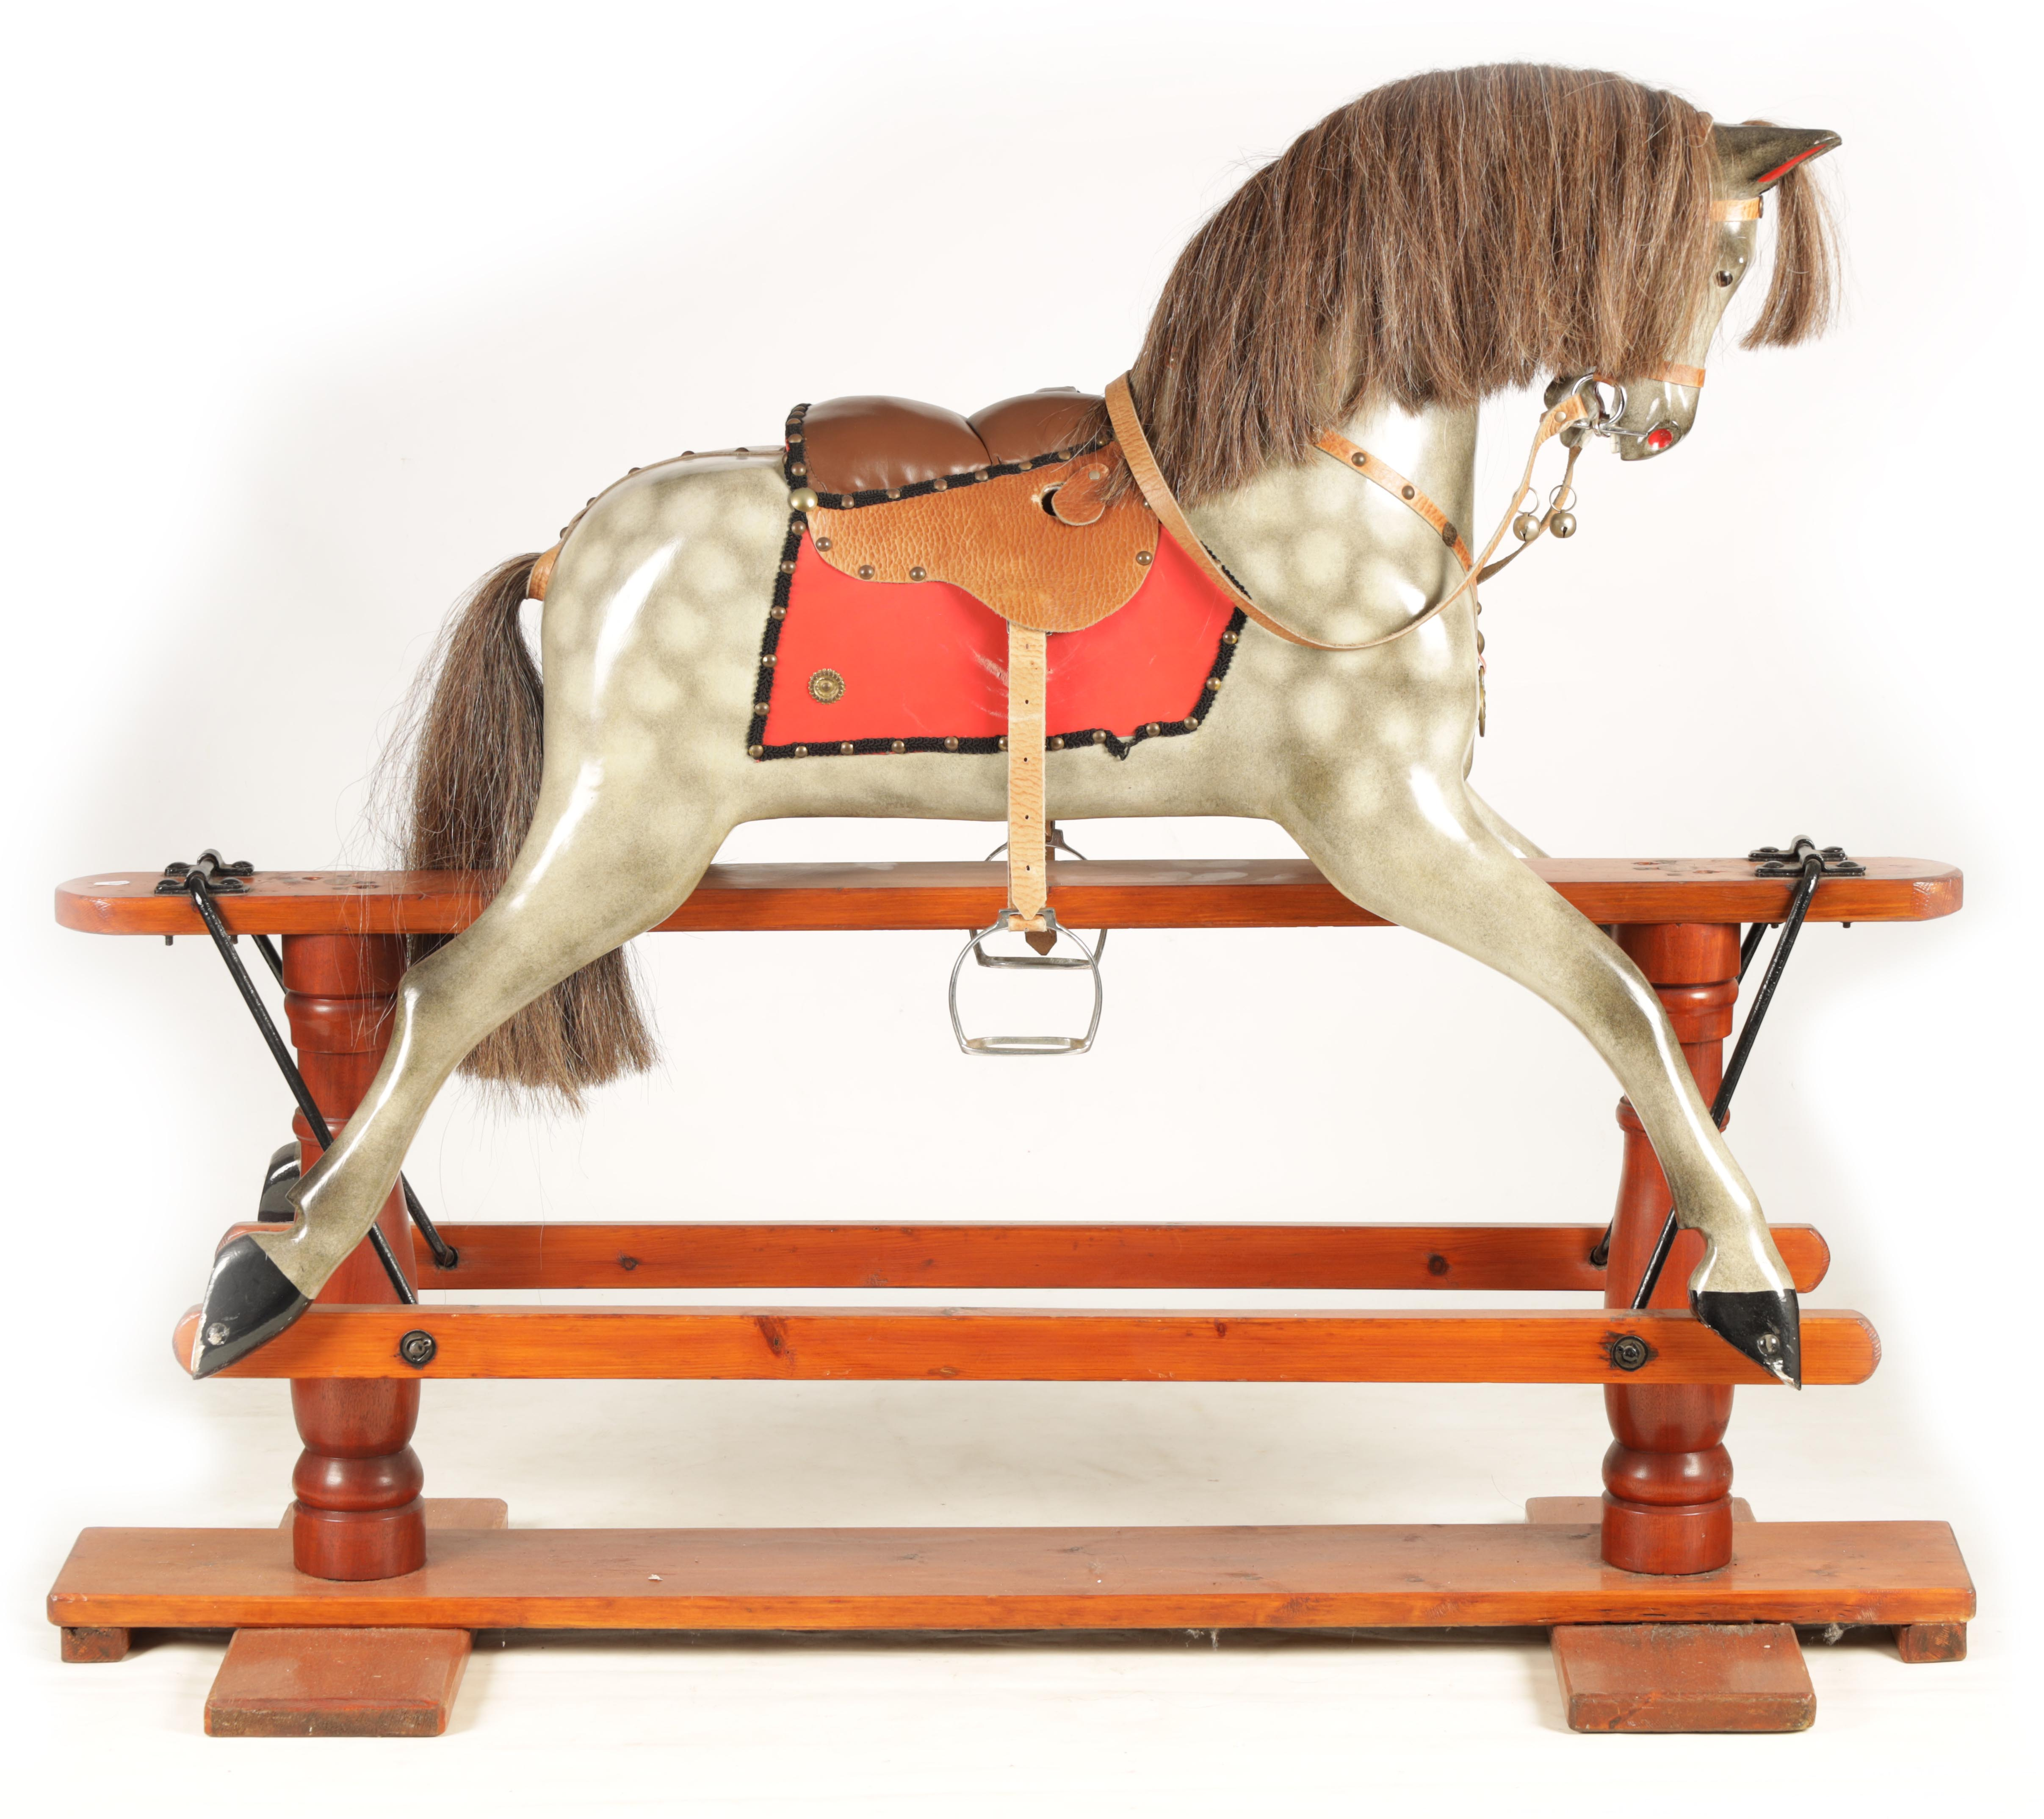 A 20TH CENTURY DAPPLE GREY PAINTED WOODEN ROCKING HORSE with leather seat and bridle 138cm wide